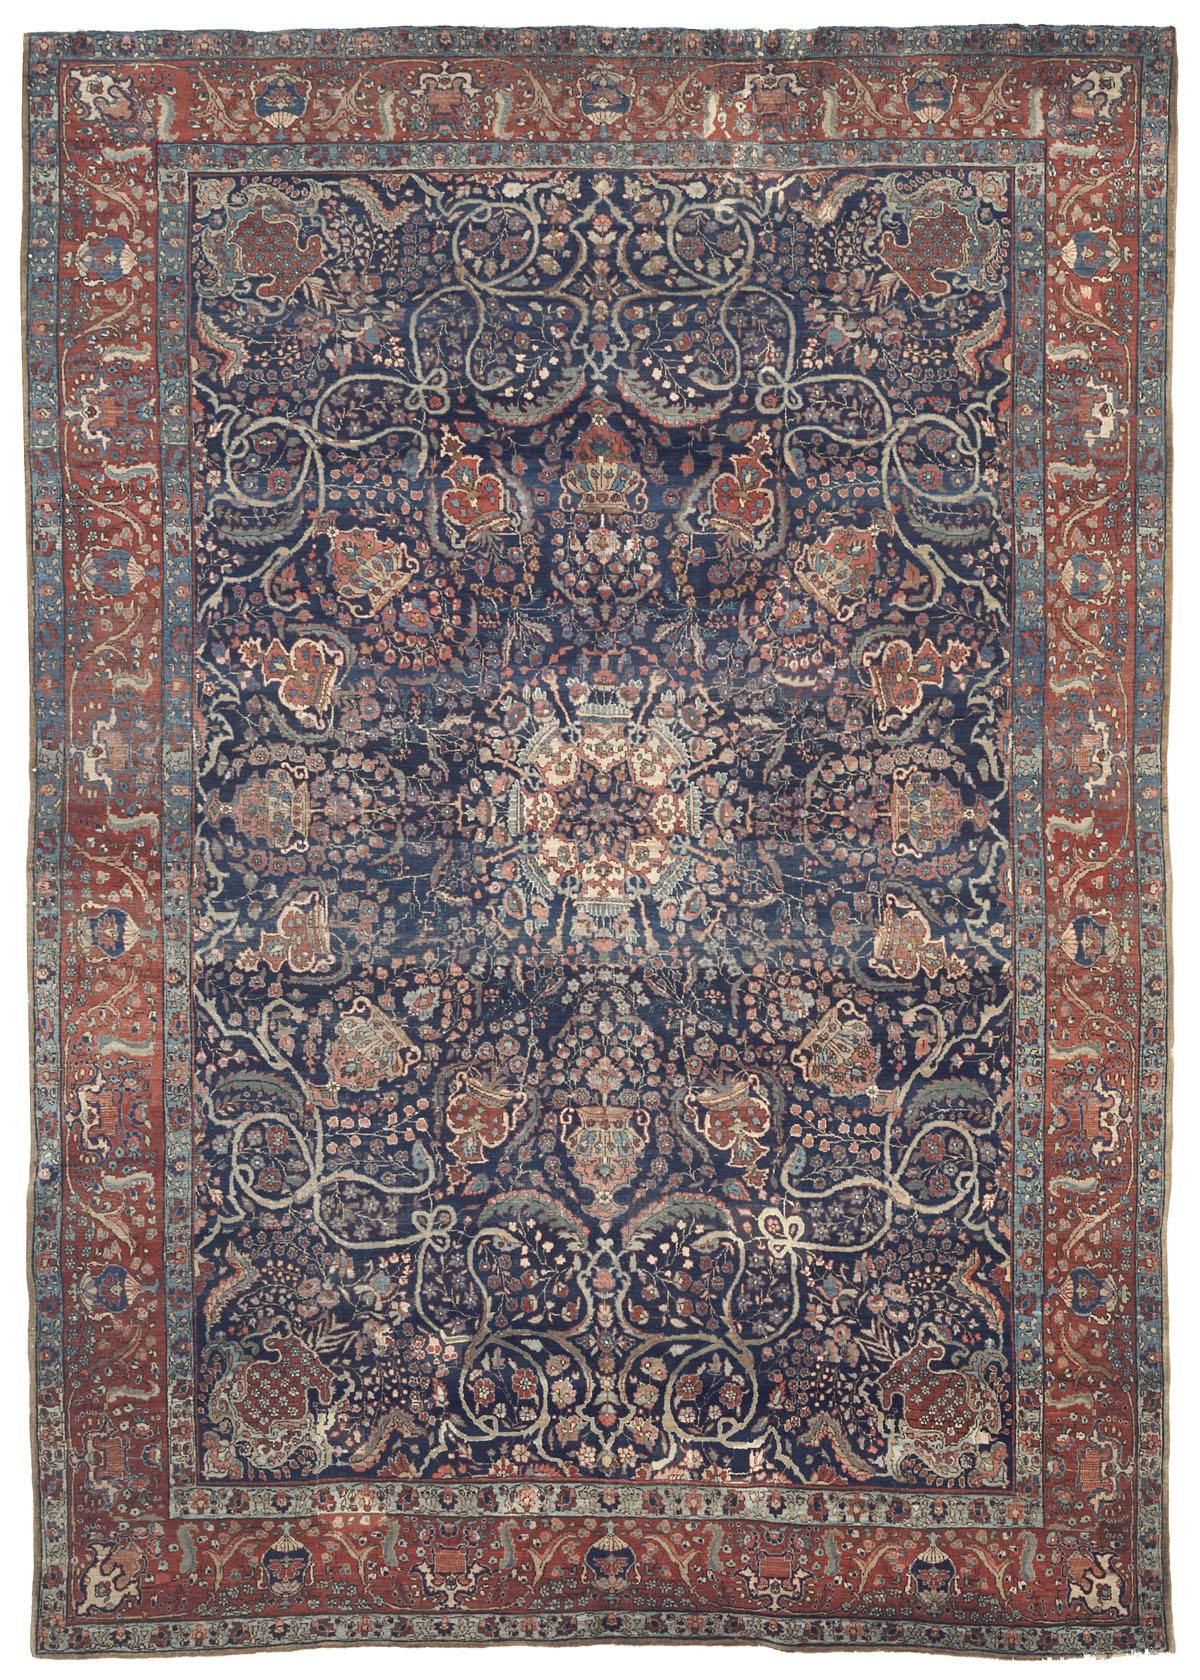 Early 20th Century Rugs